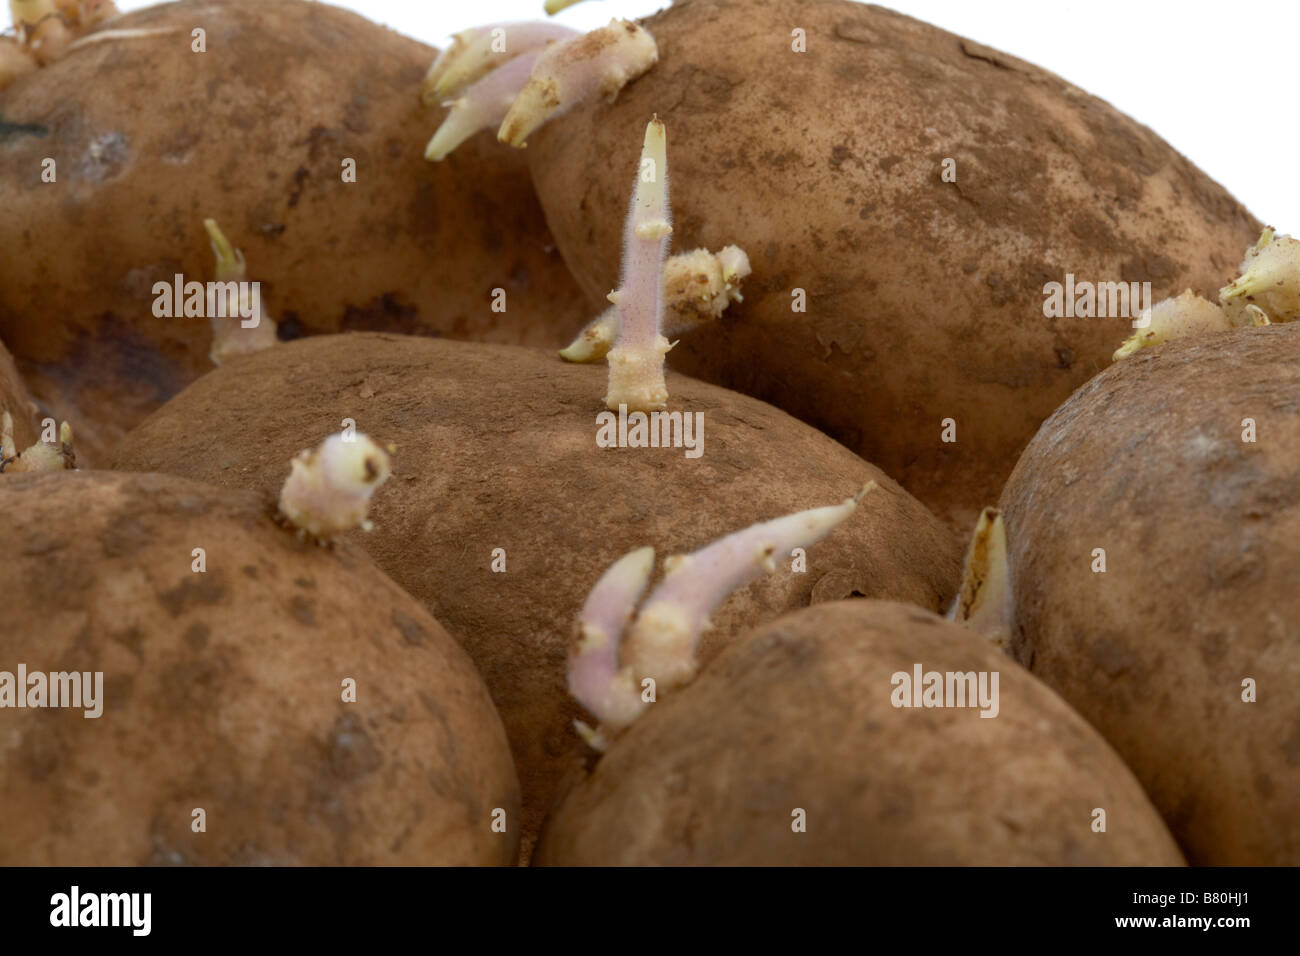 new growth shoots sprouting out of a bunch of potatoes Stock Photo